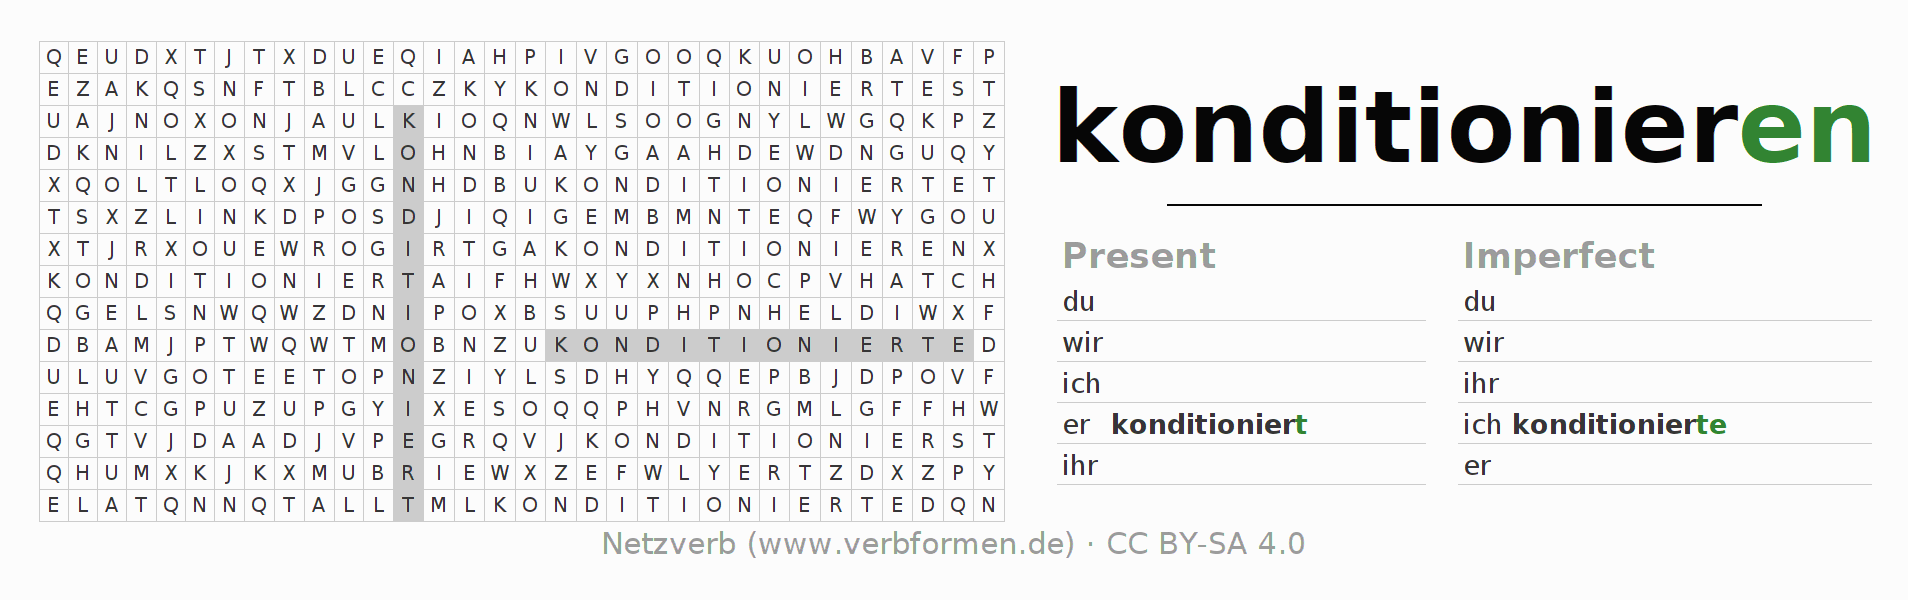 Word search puzzle for the conjugation of the verb konditionieren